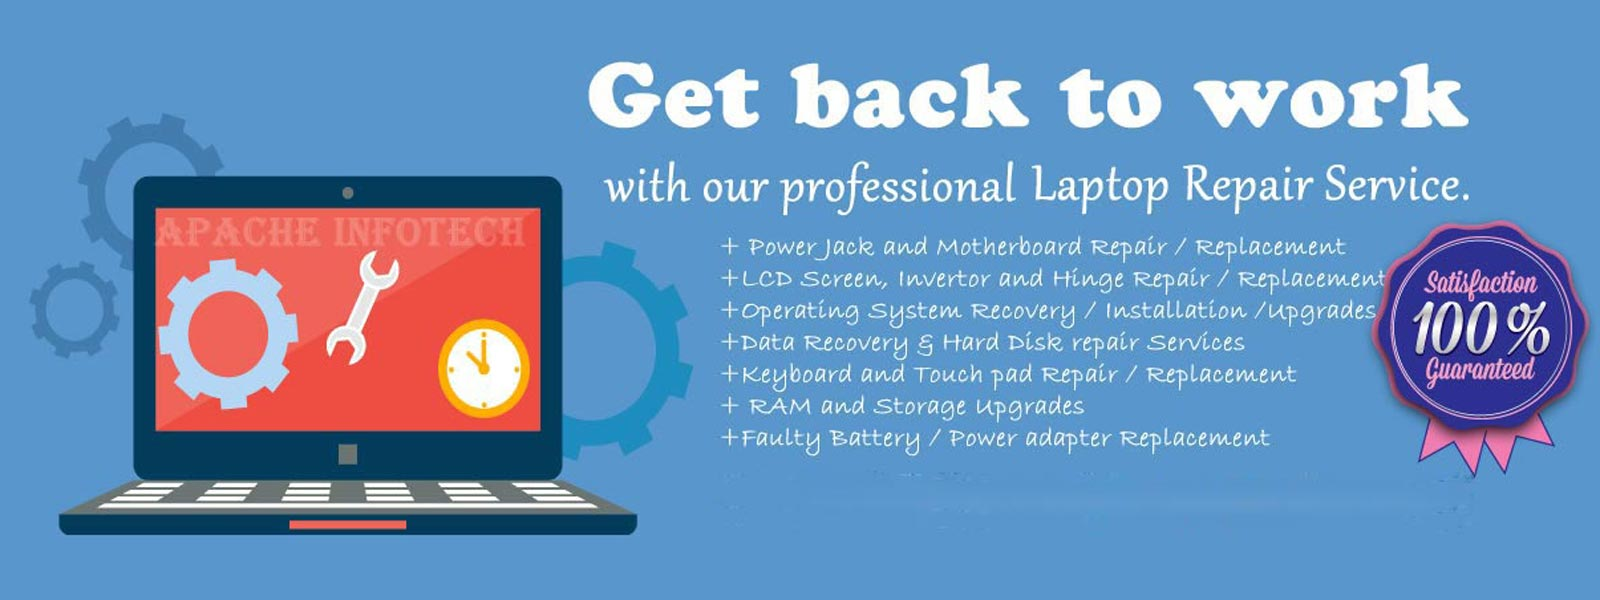 lenovo Laptop Spare Parts & Accessories On Affordable Price